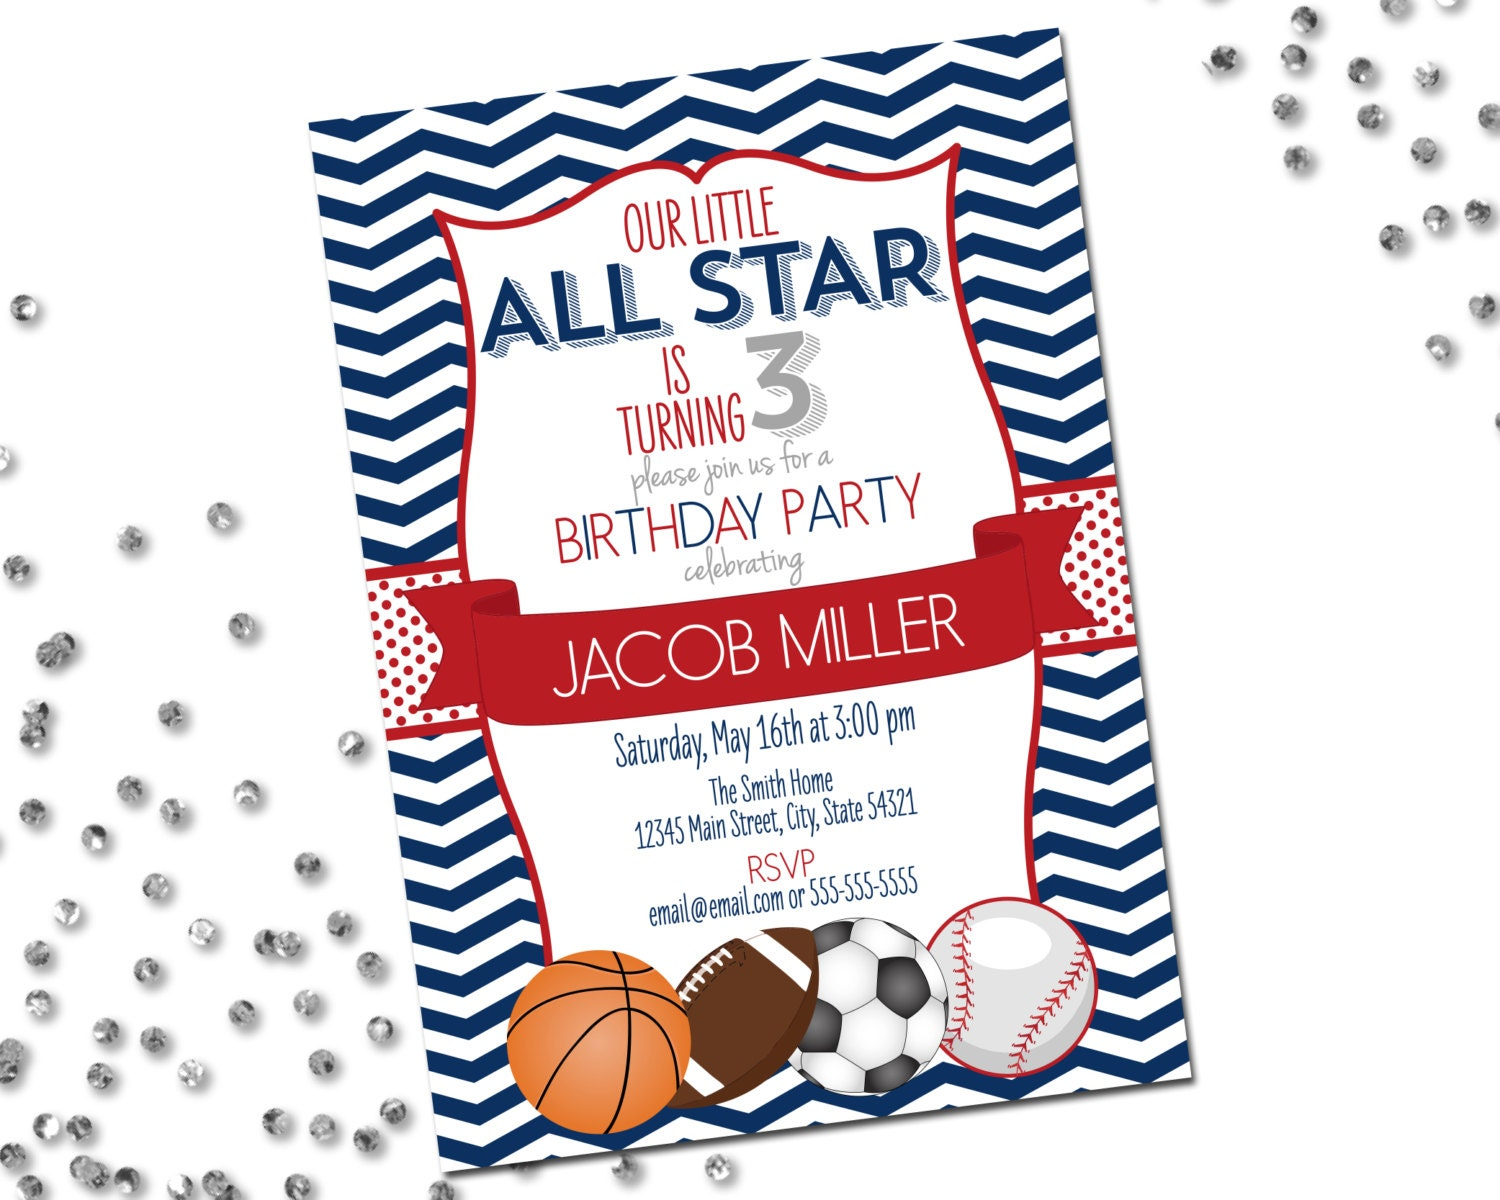 All Star Sports Birthday Party Invitation Basketball